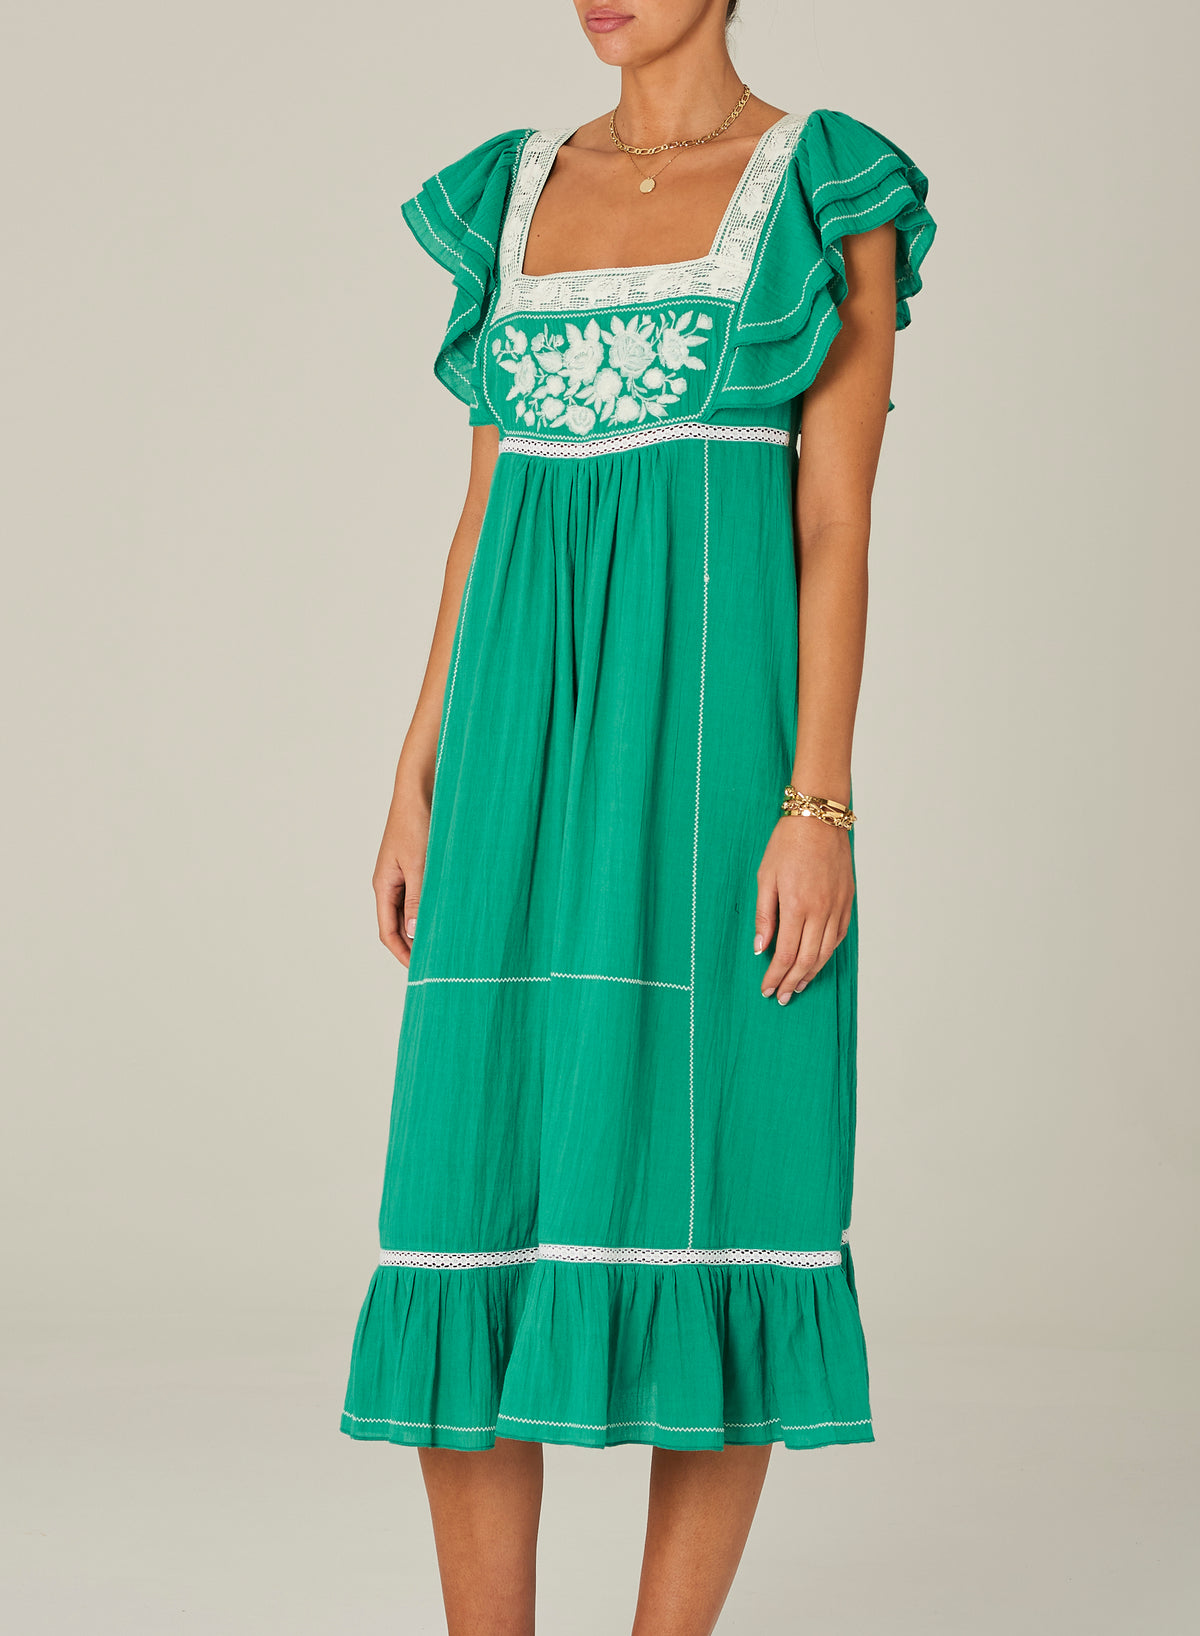 M.A.B.E. - Alberta Dress | Green/Ecru